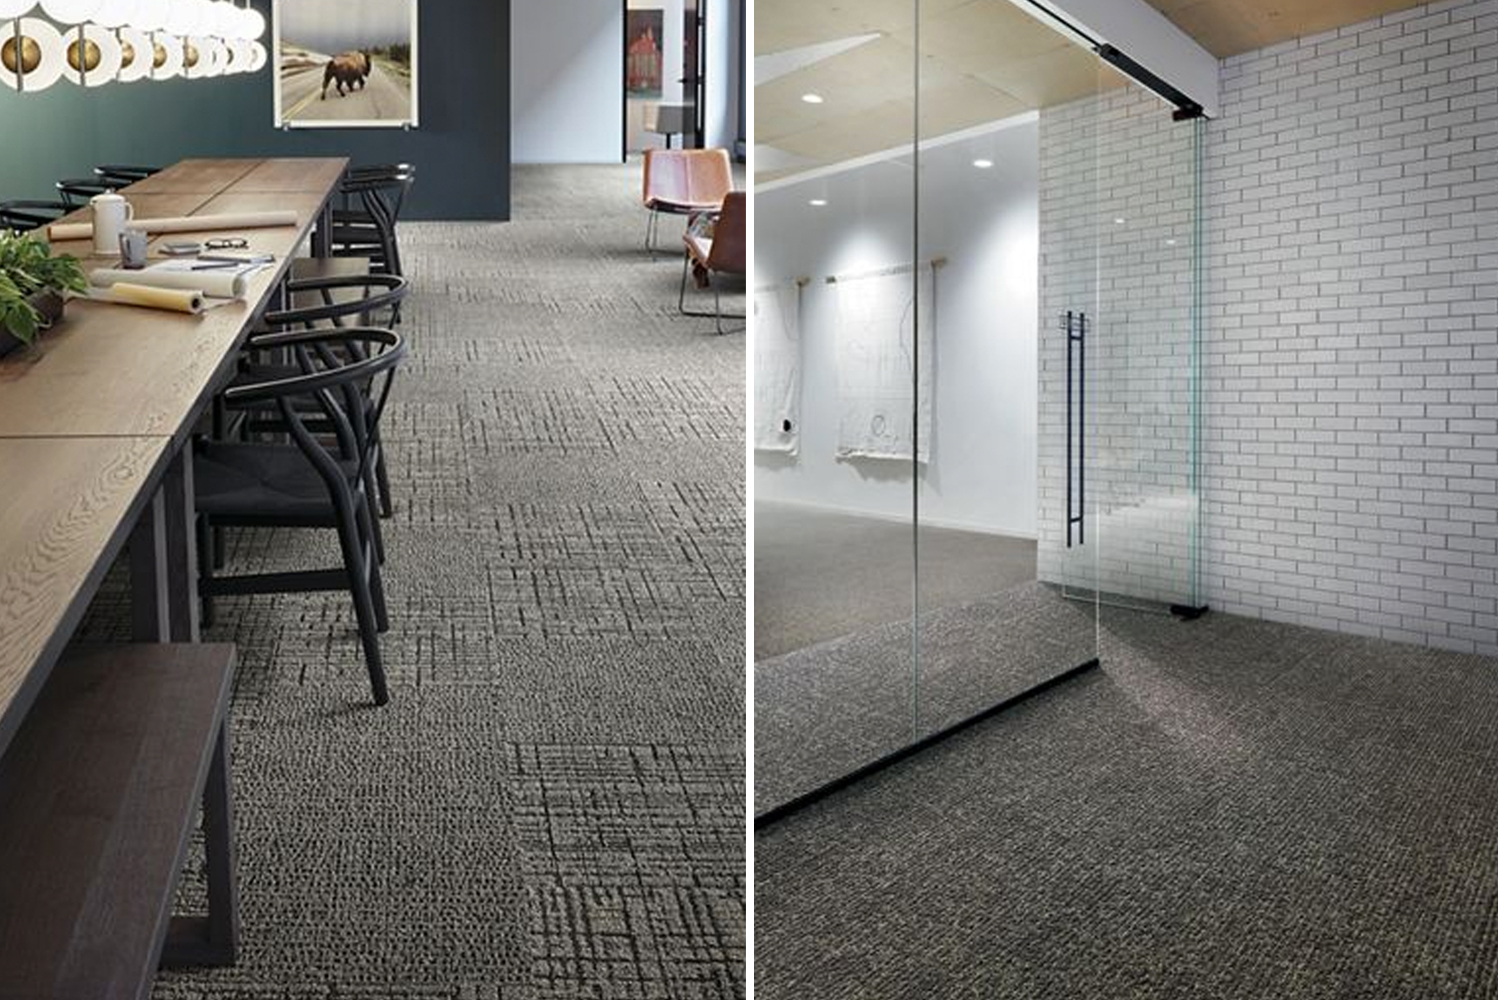 Interface launched Second story, a new collection of carpet tiles. Four